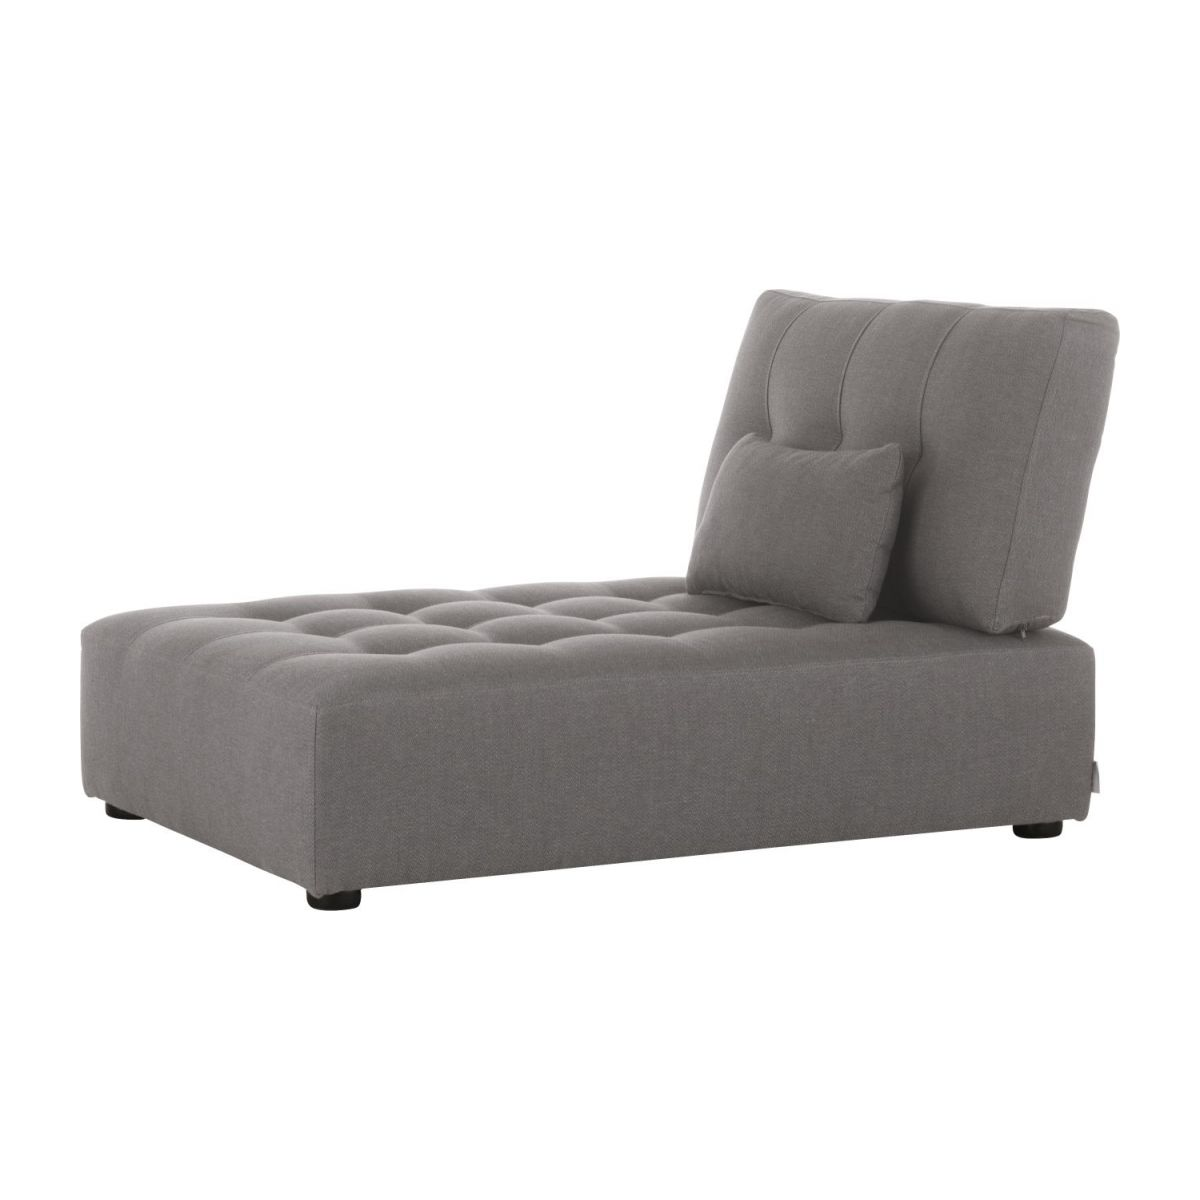 Fabric chaise longue unit n°1